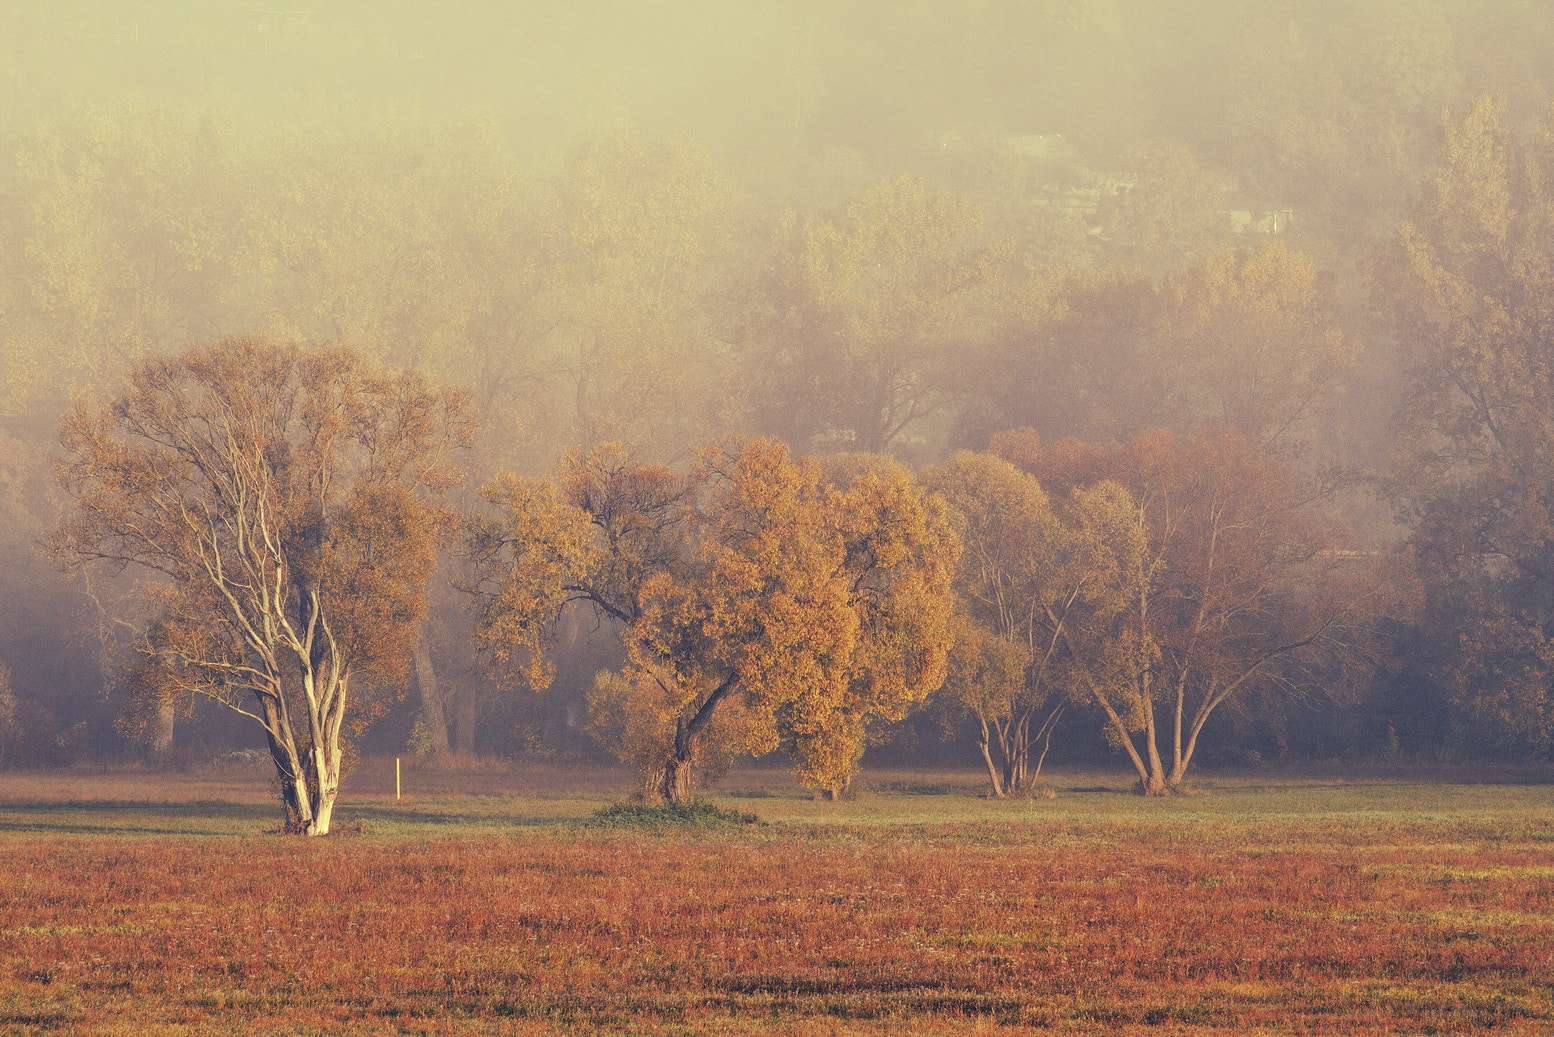 Photograph Autumn day by Harry Keller on 500px